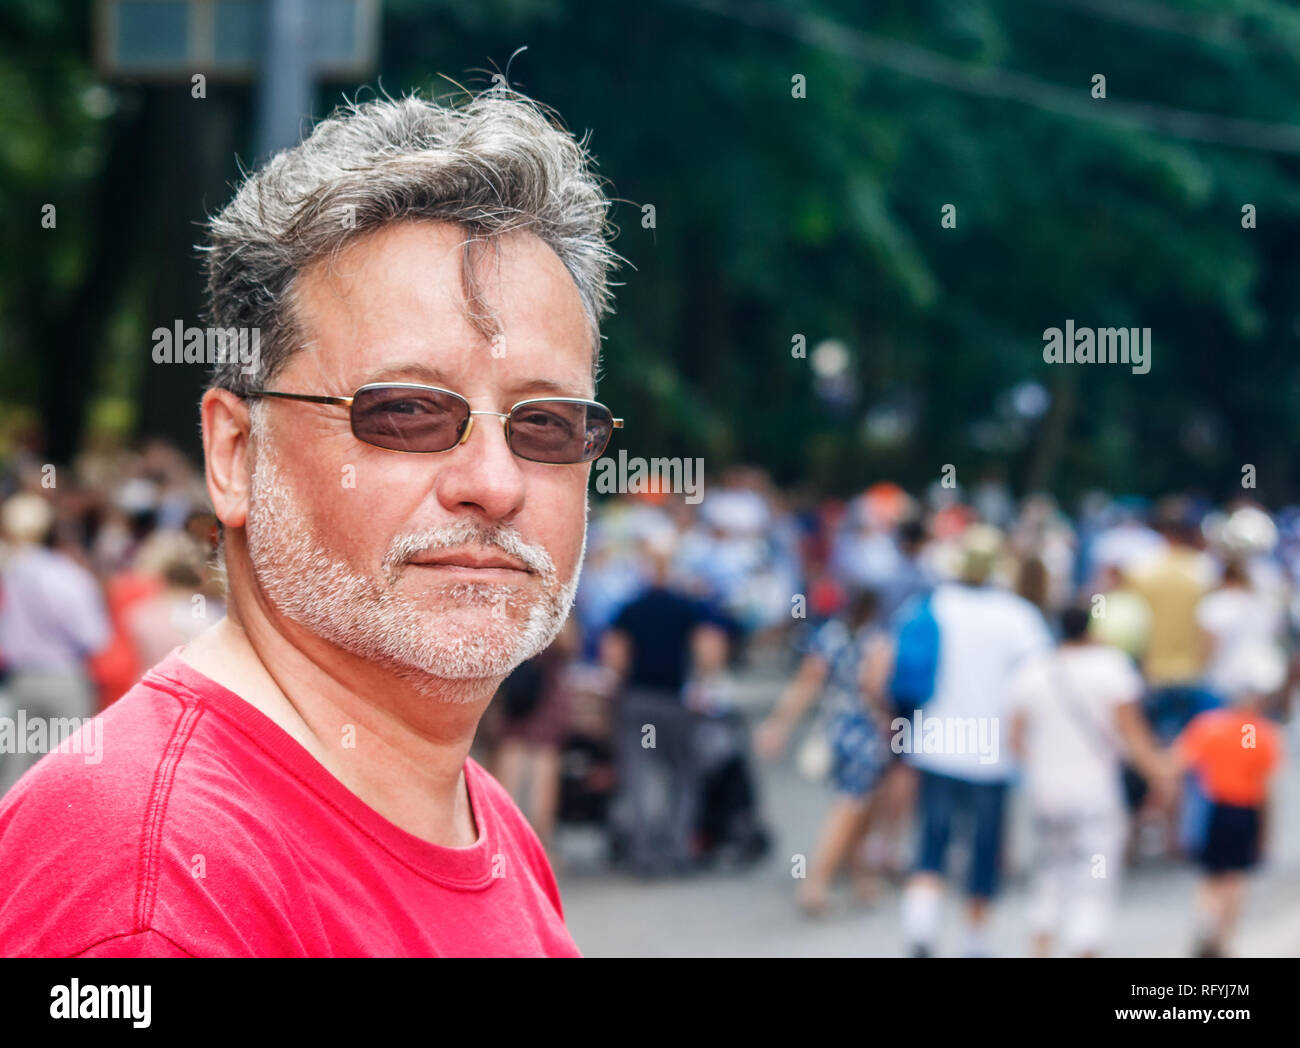 21eff13c8c6e portrait of an elderly man with glasses and gray beard in the city park on  sunny